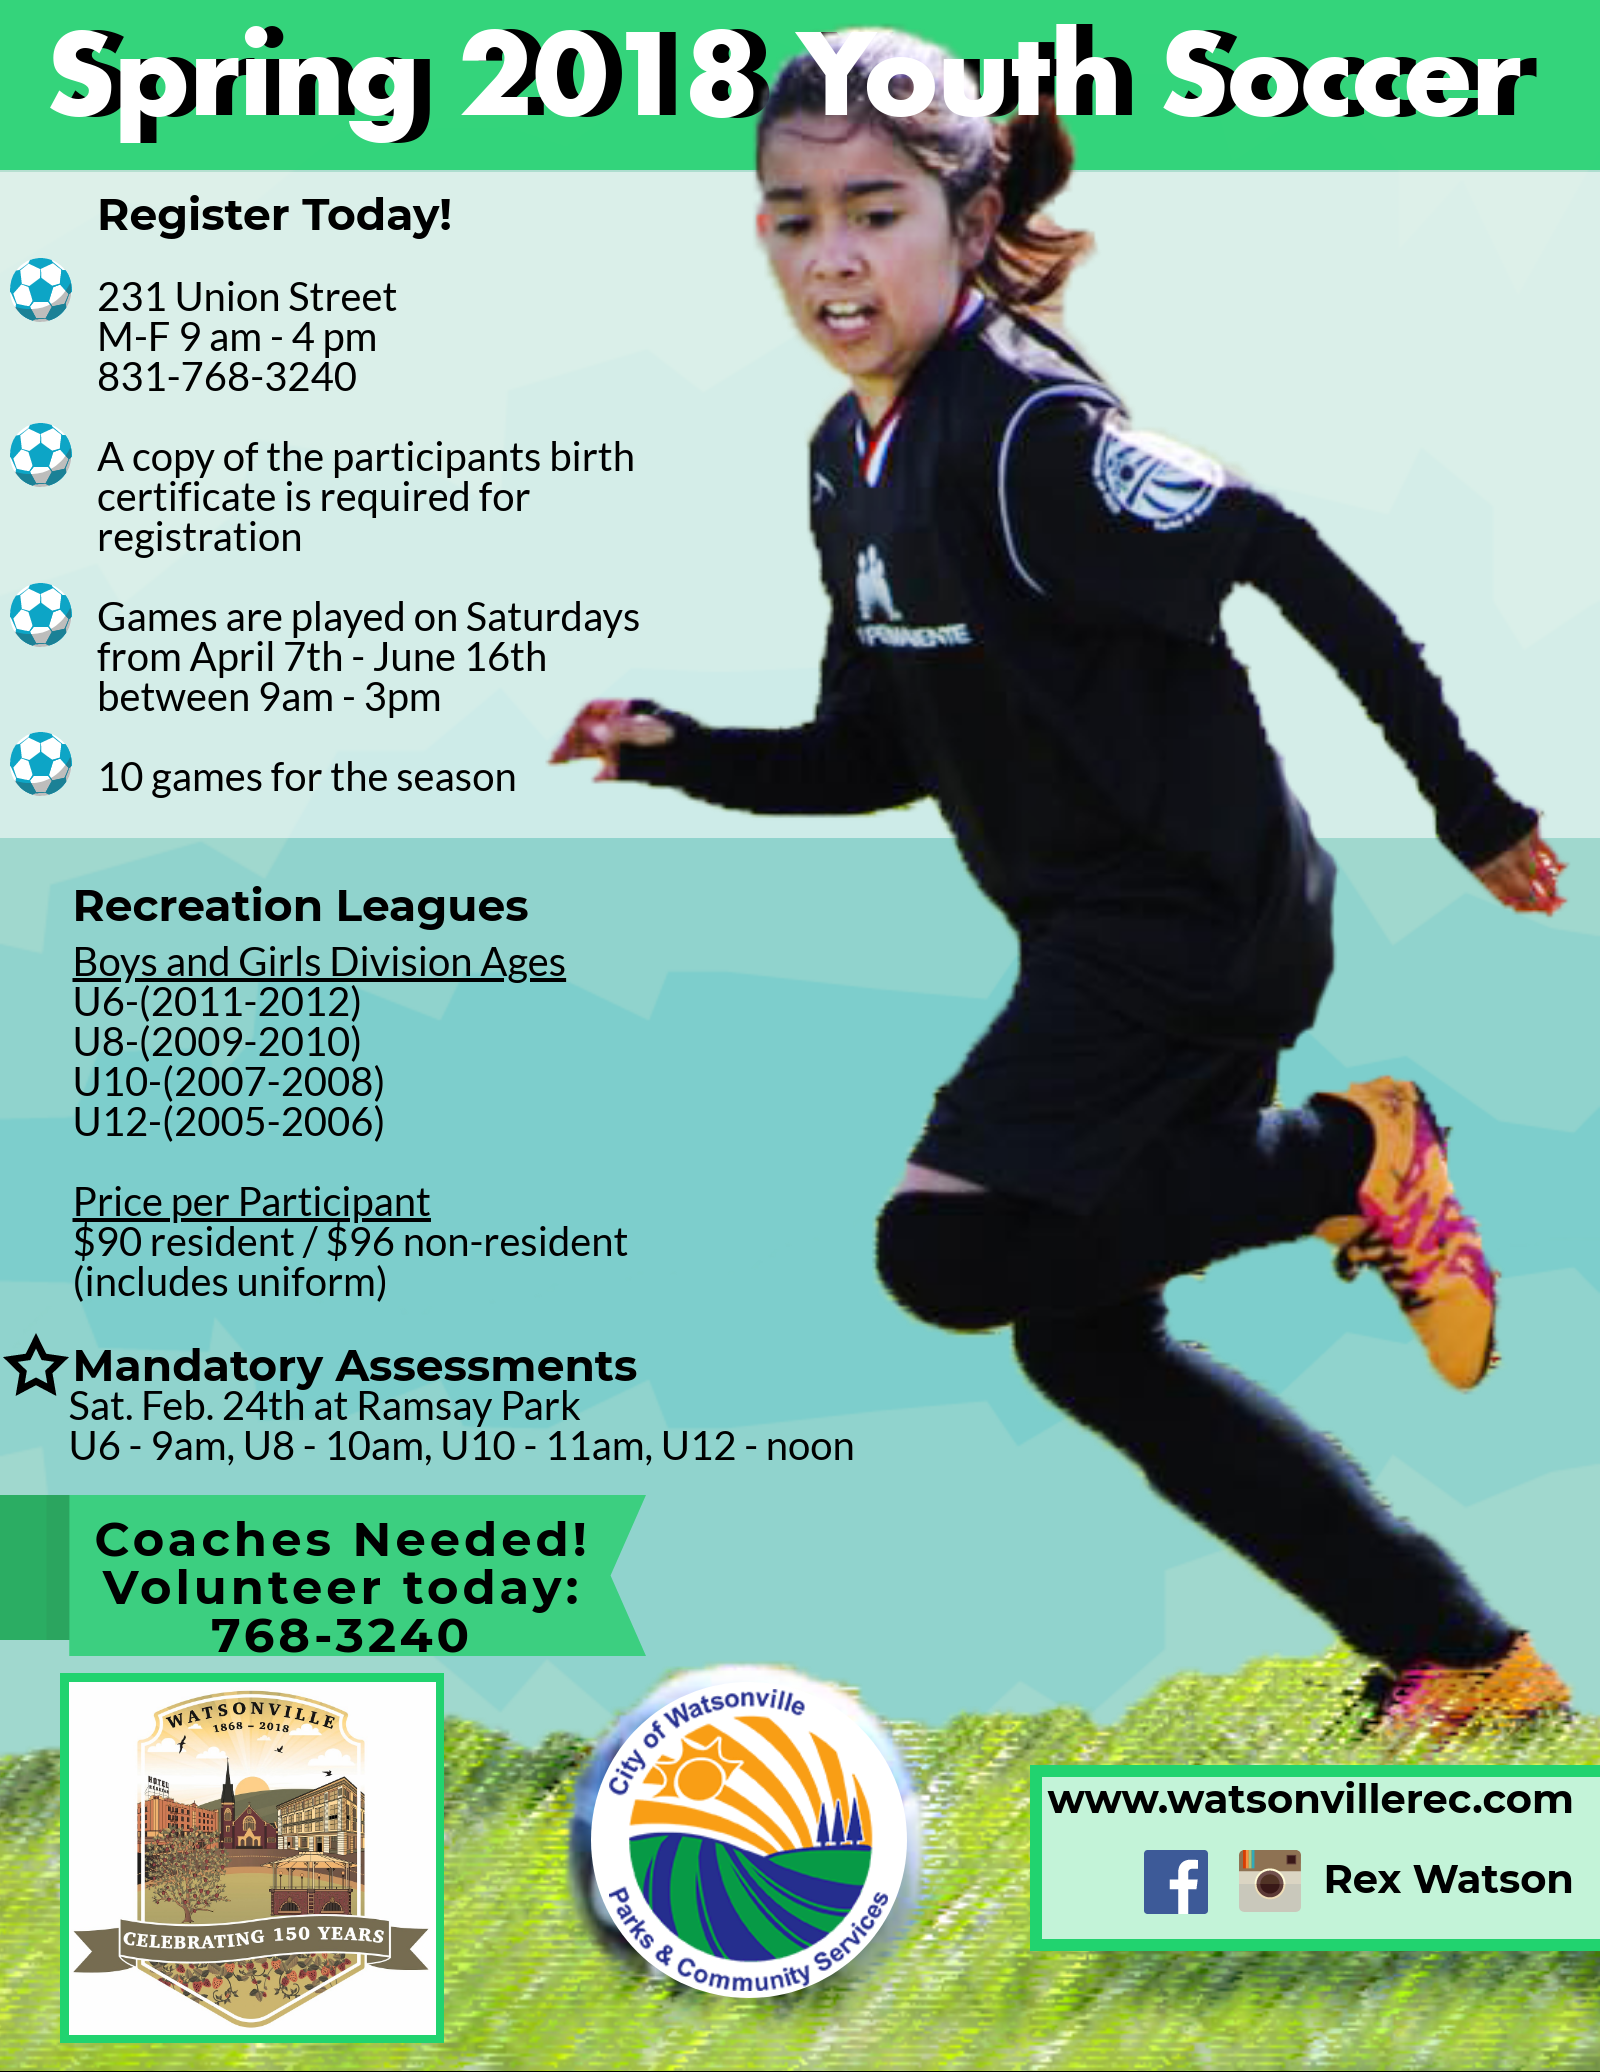 Spring 2018 Youth Soccer English